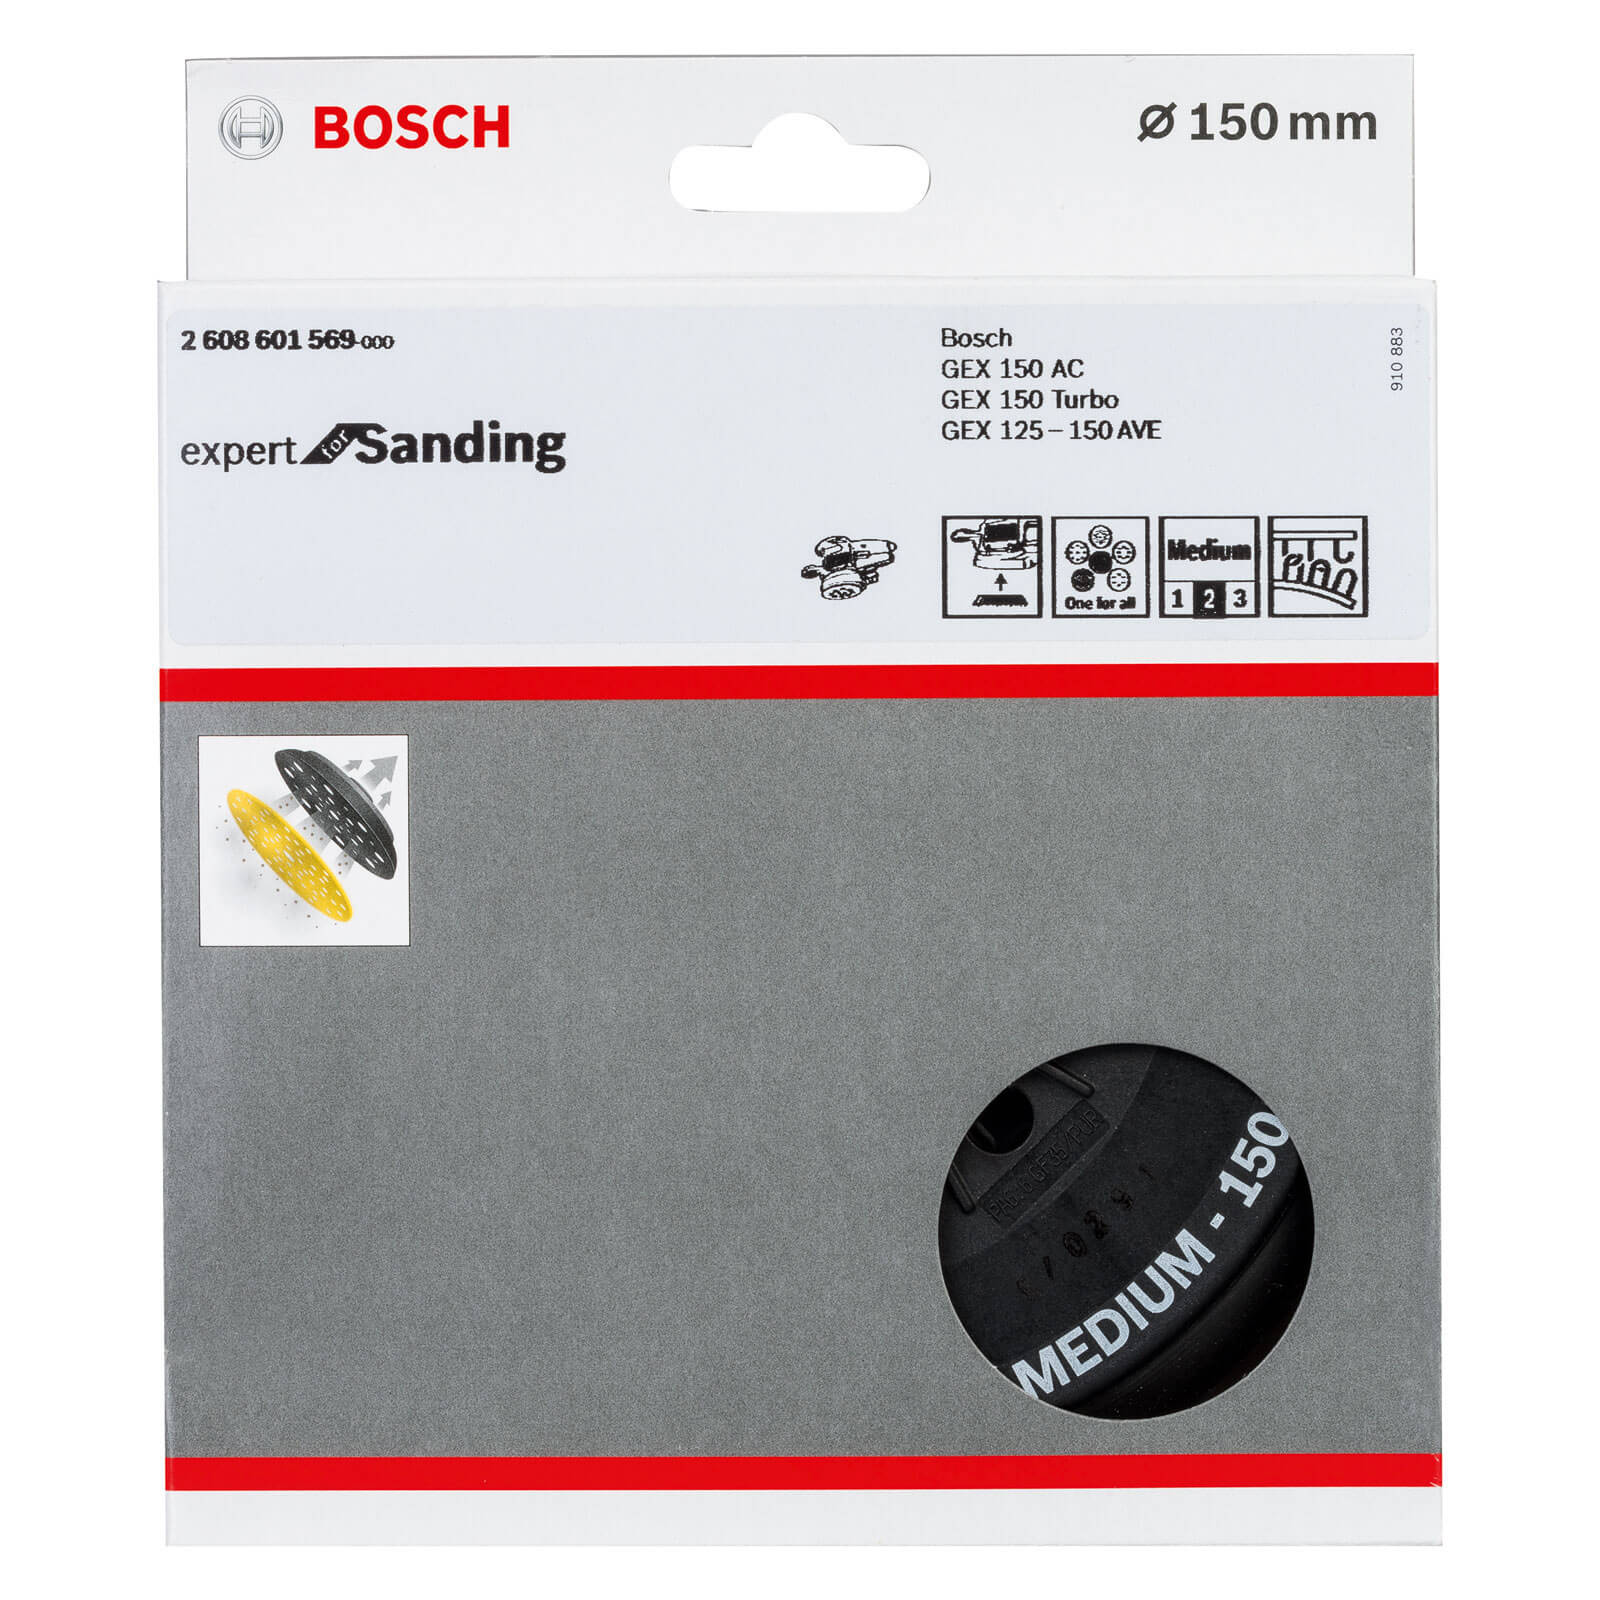 PAD BOSCH GEX 150 AC GEX 150 TURBO GEX 125-150 SANDER REPLACEMENT 150mm BASE